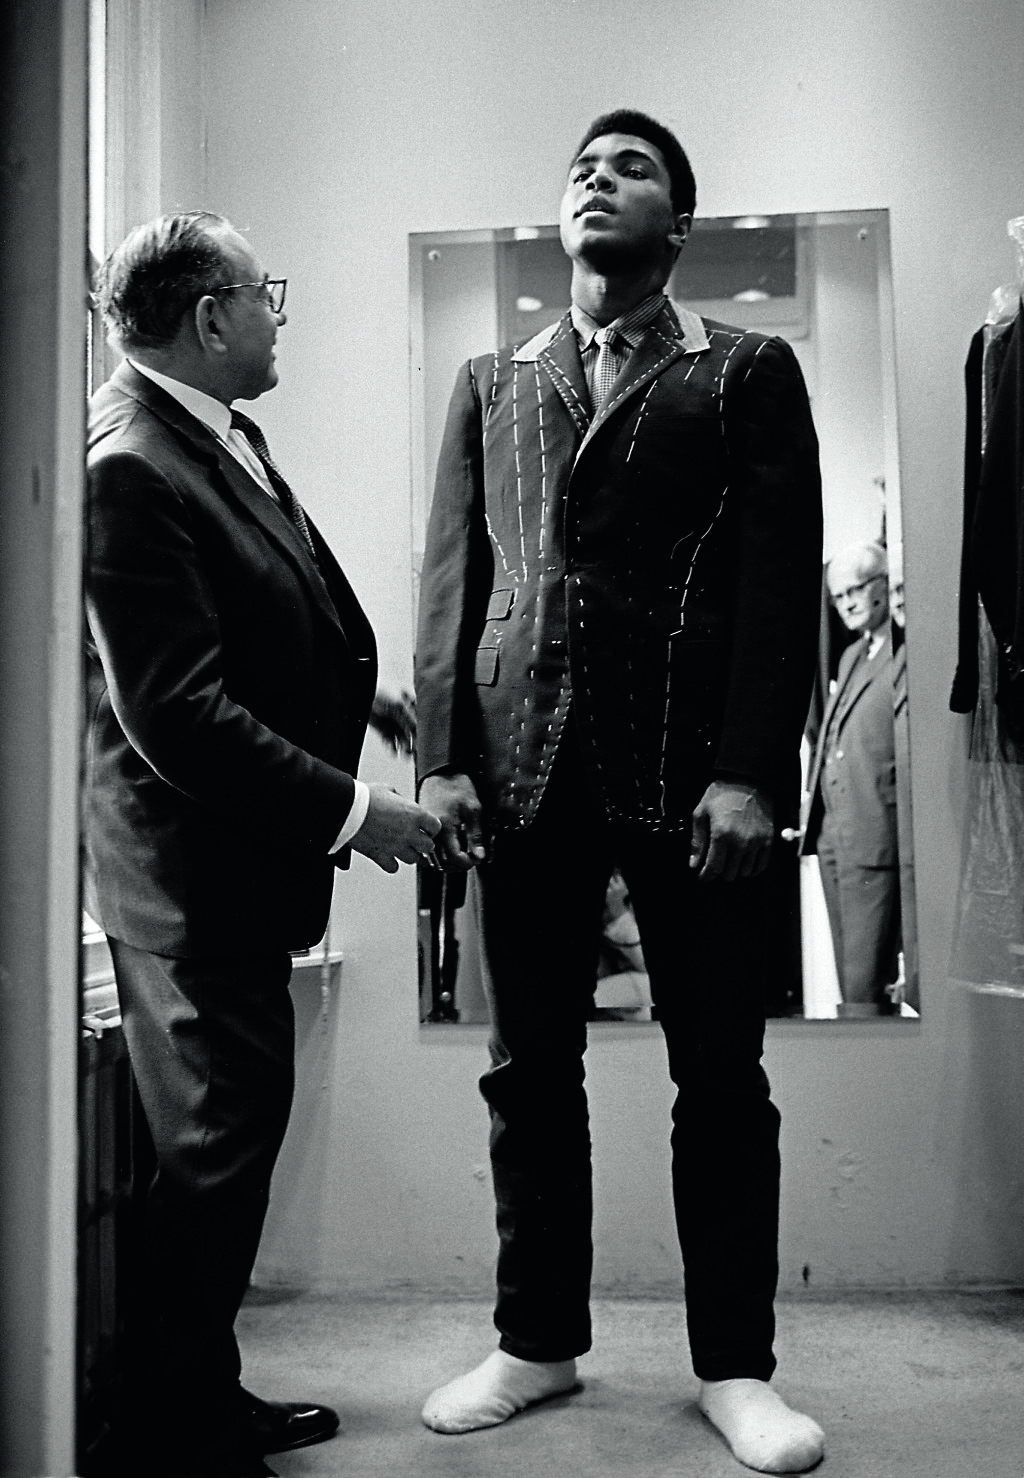 Muhammad Ali (then Cassius Clay), boxing world heavy weight champion at a taylor in London being fitted for a new suit. HOT1966015W02706-8A © Thomas Hoepker / MAGNUM